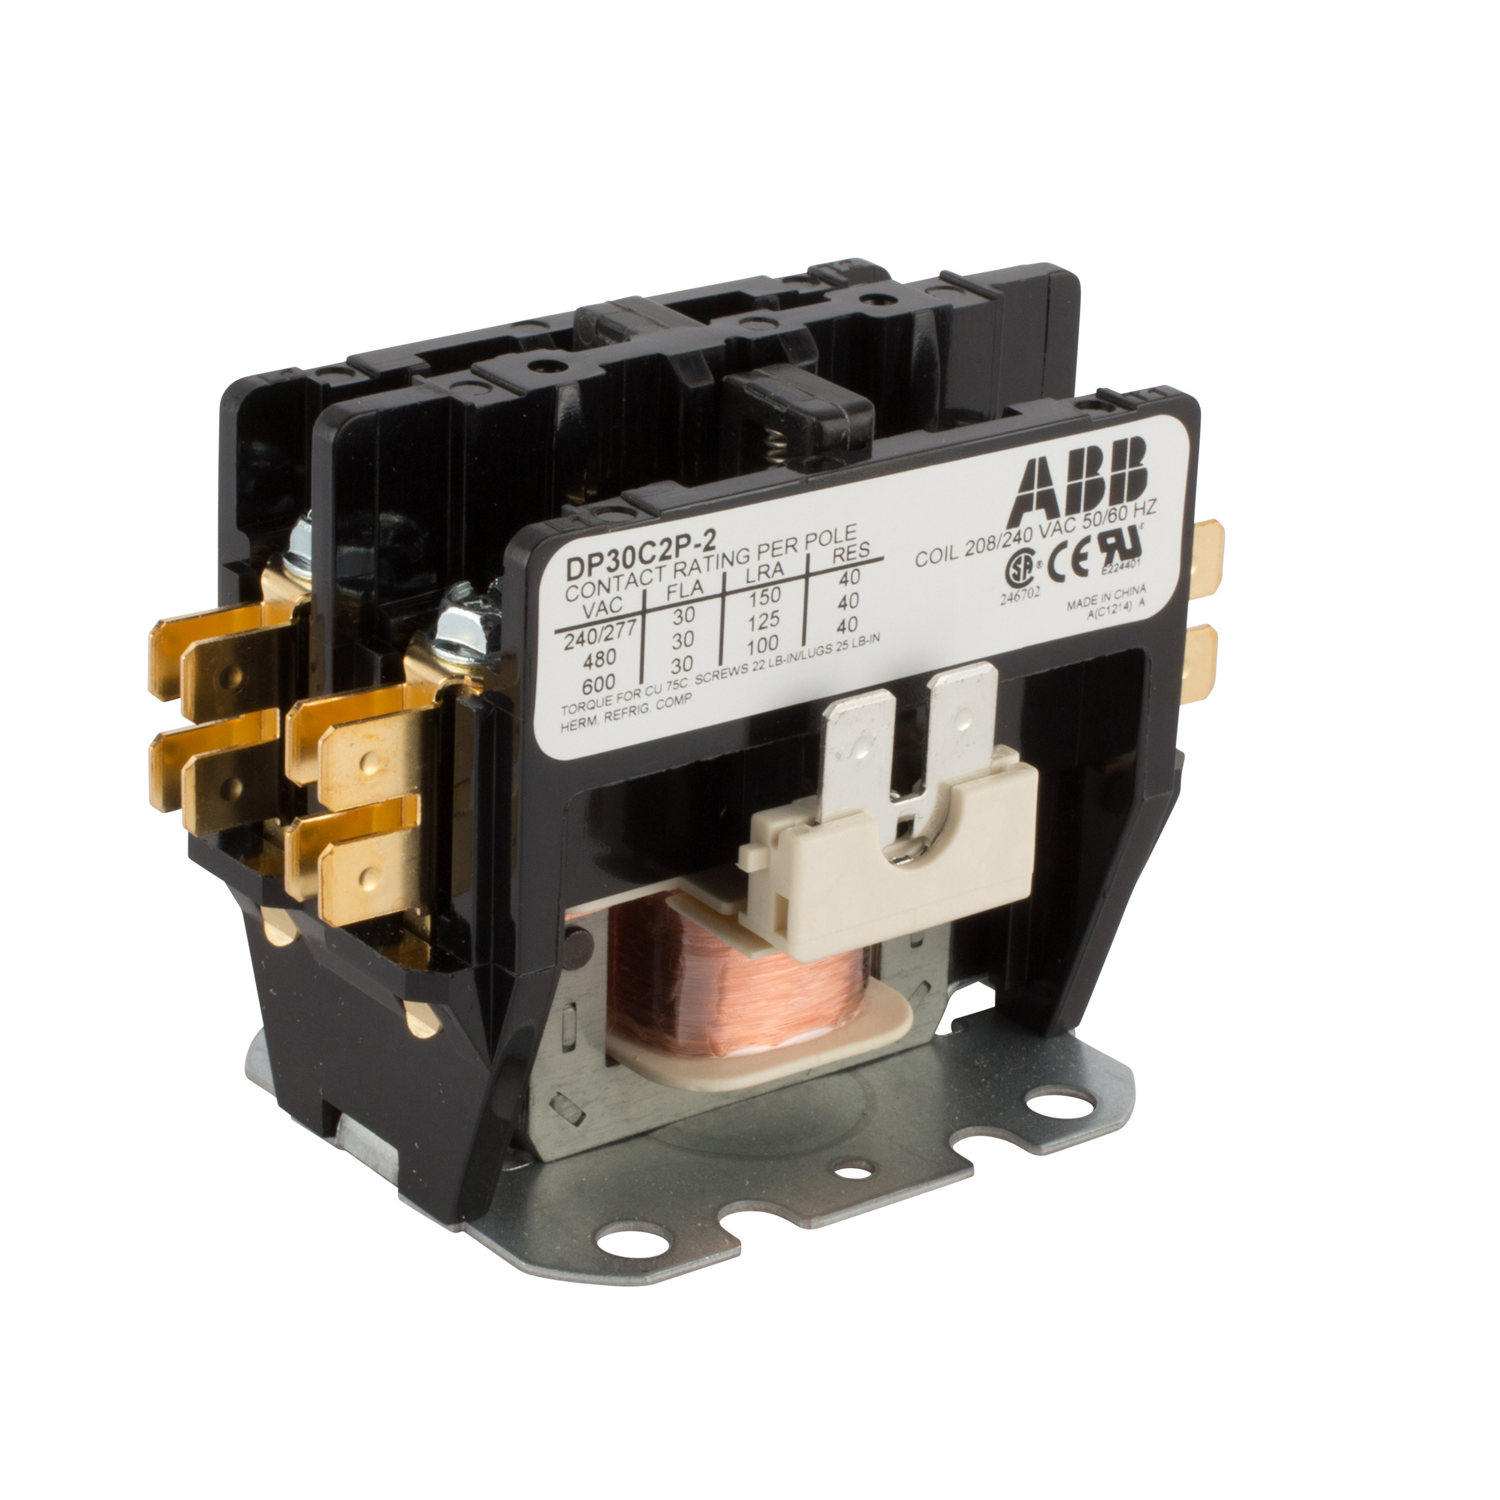 ABB DP30C2P-2 DPCONTR, 30A, 2P, 240 /208V 30 Amp, 2-Pole, Definite Purpose Contactor, 600V Rated, Screw Terminals, 208/240V AC Coil. **THESE CONTACTORS ARE NOT RECOMMENDED FOR USE ON LIGHTING CIRCUITS, IF THEY ARE USED ON LIGHTING CIRCUITS, THEY WILL NOT BE COVERED UNDER WARRANTY**